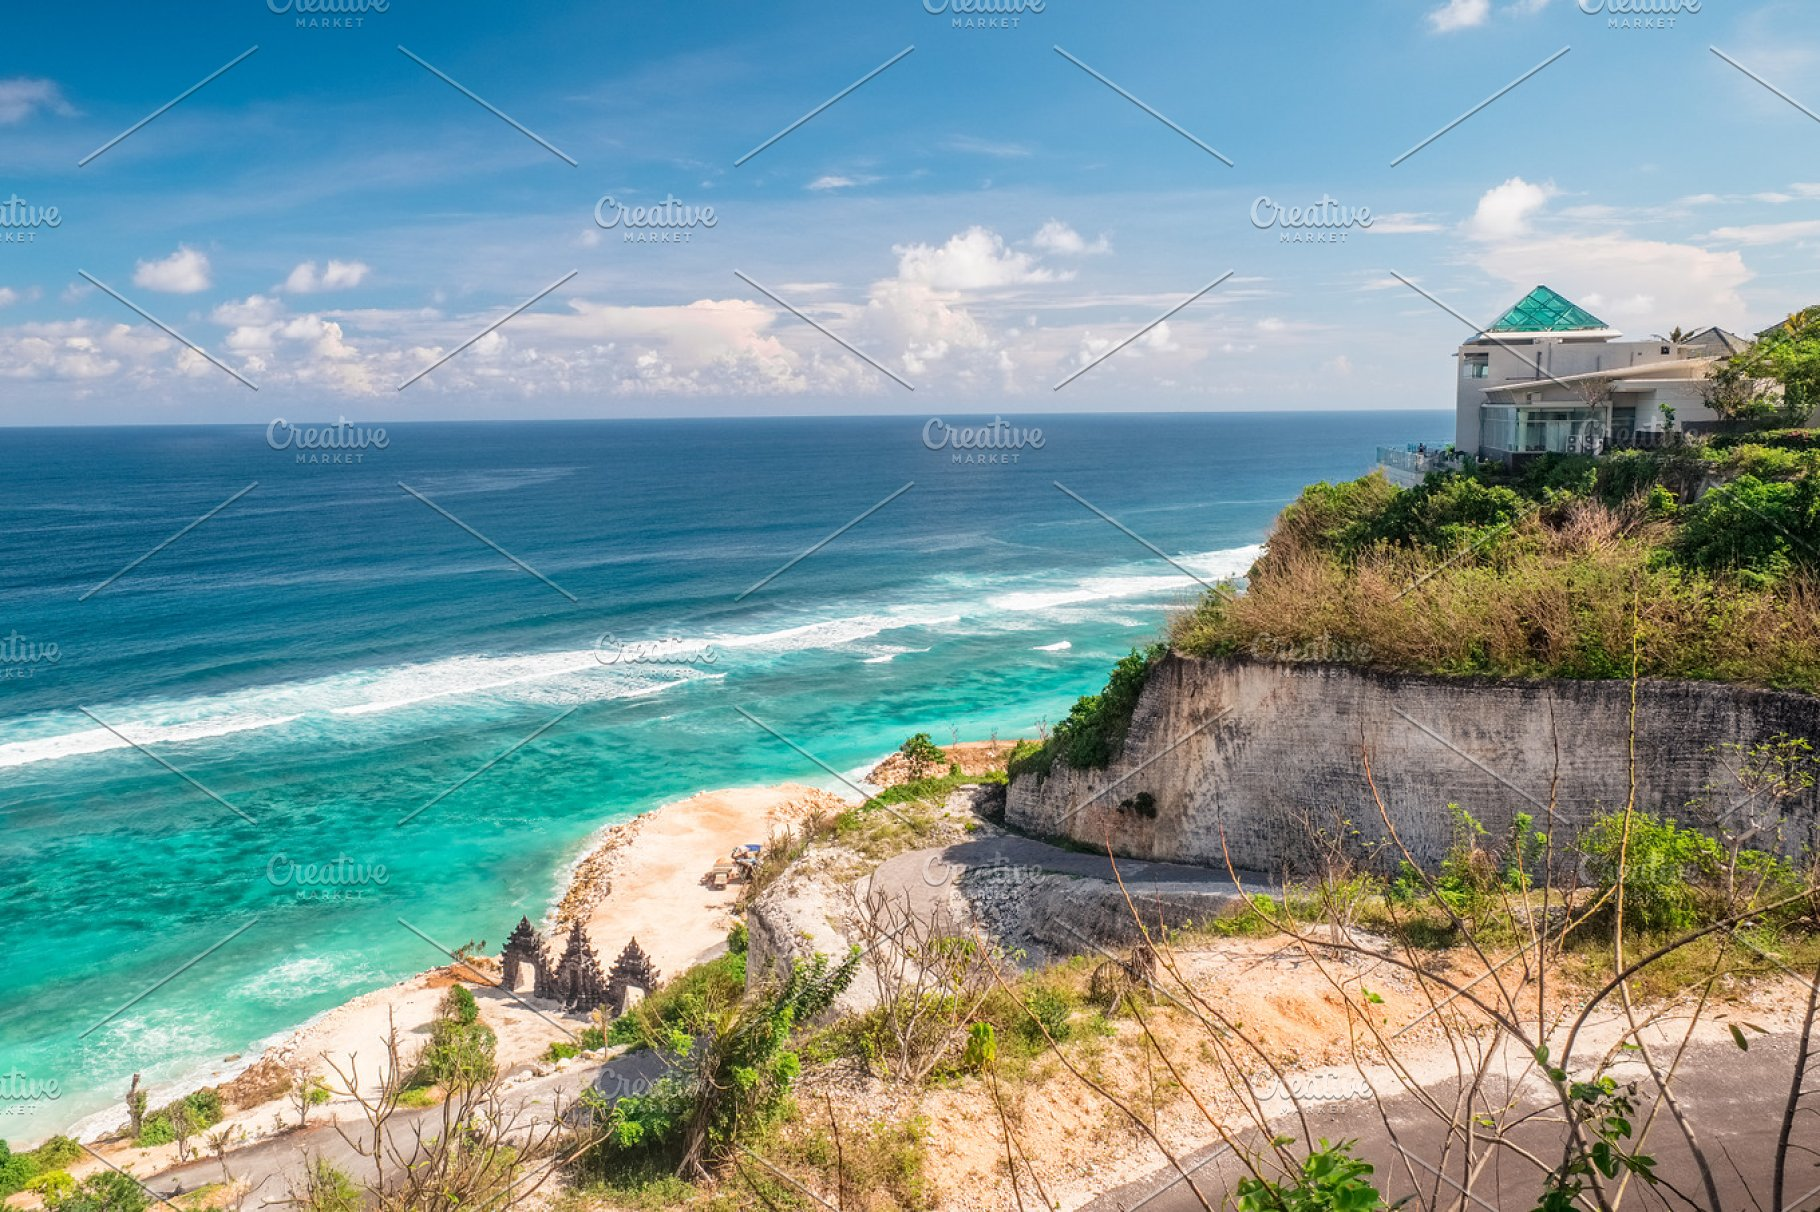 Scenic landscape of high cliff on tropical white sand beach in Bali island   Indonesia tropical nature outdoor landscape with scenic sea water and